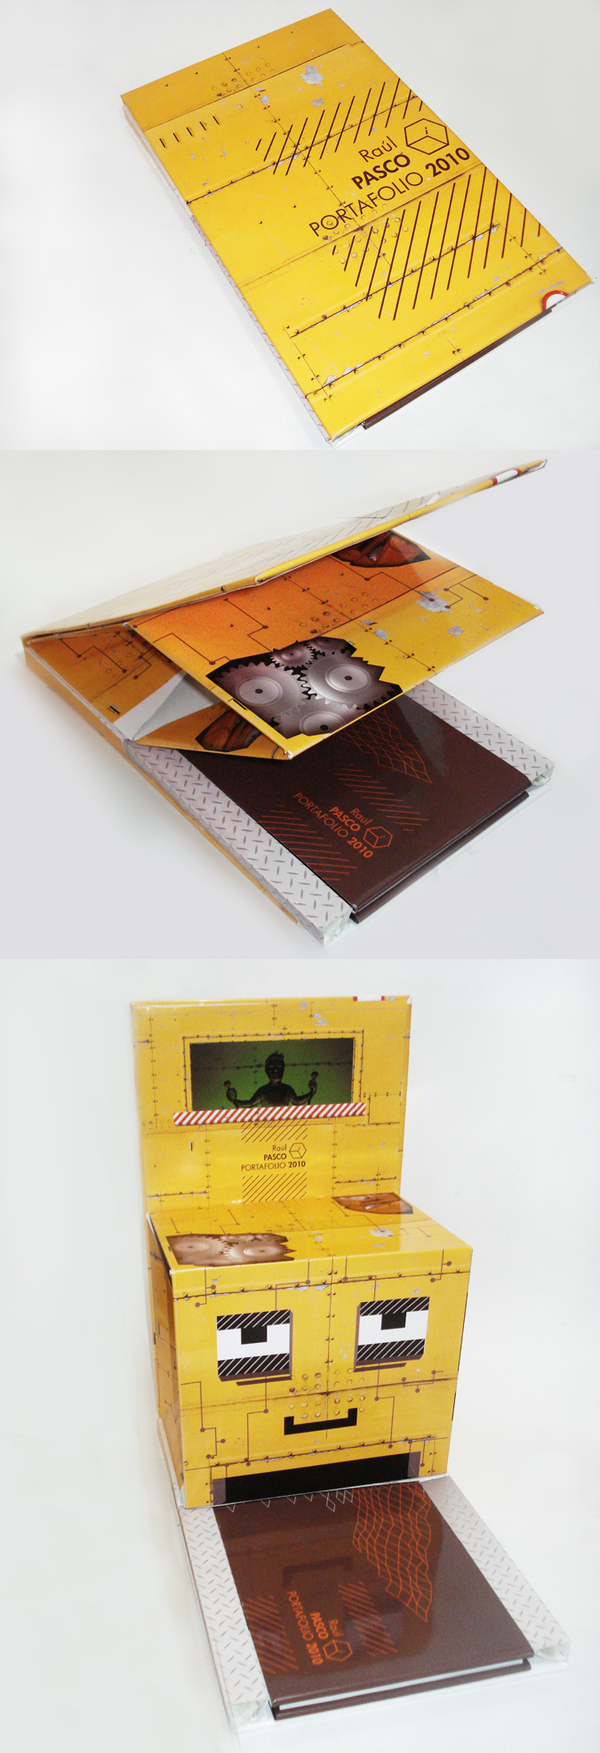 Printed Graphic Design Portfolio Example - Raul Pasco